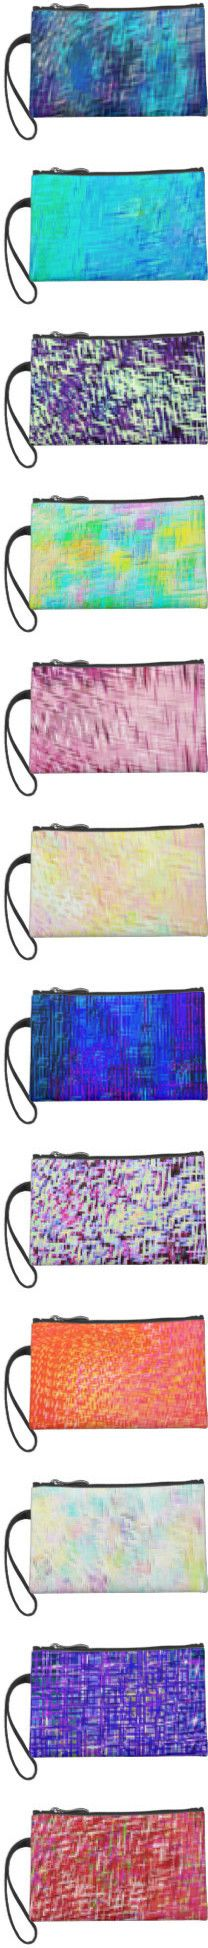 #Robert #S. #Lee #art #graphic #design #colors #bag #wristlet #purse #girls #women #love #style #fashion #accessory #for #her #gift #want #need #love #customizable #squares Re-Created Checks by Robert S. Lee by robertsleeart on Polyvore featuring women's fashion, bags, handbags, clutches, blue clutches, blue hand bag, wristlet clutches, man bag, square purse and blue purse